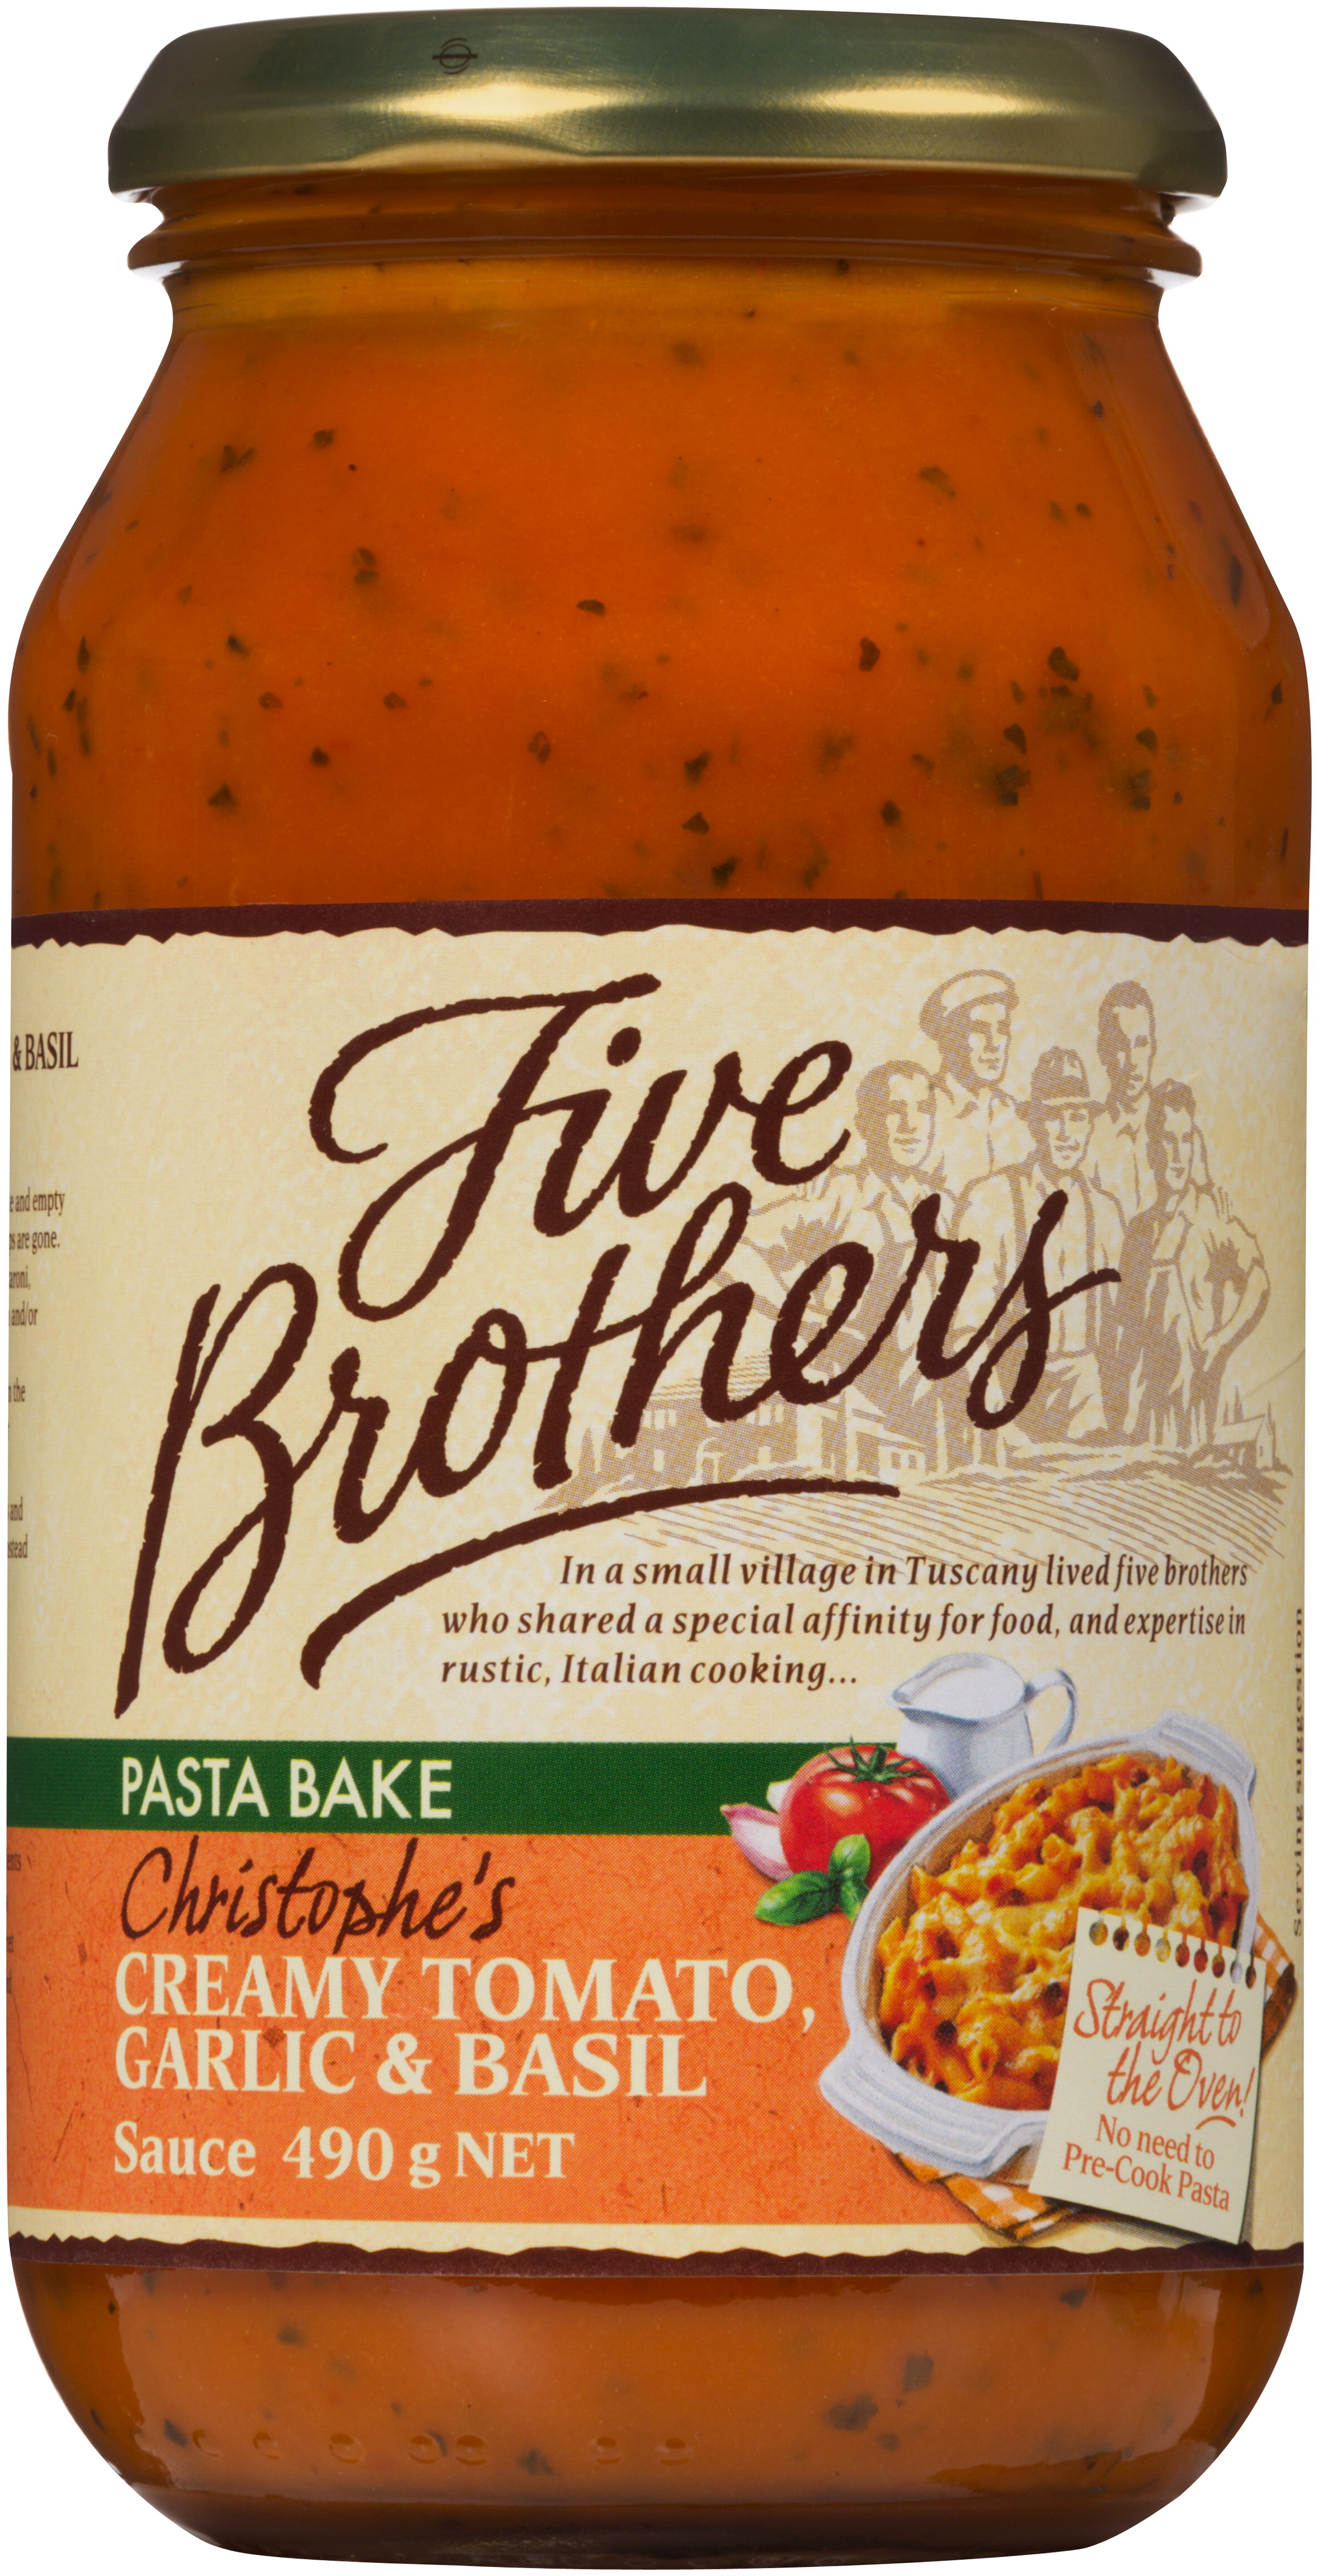 Five Brothers now has a pasta bake range